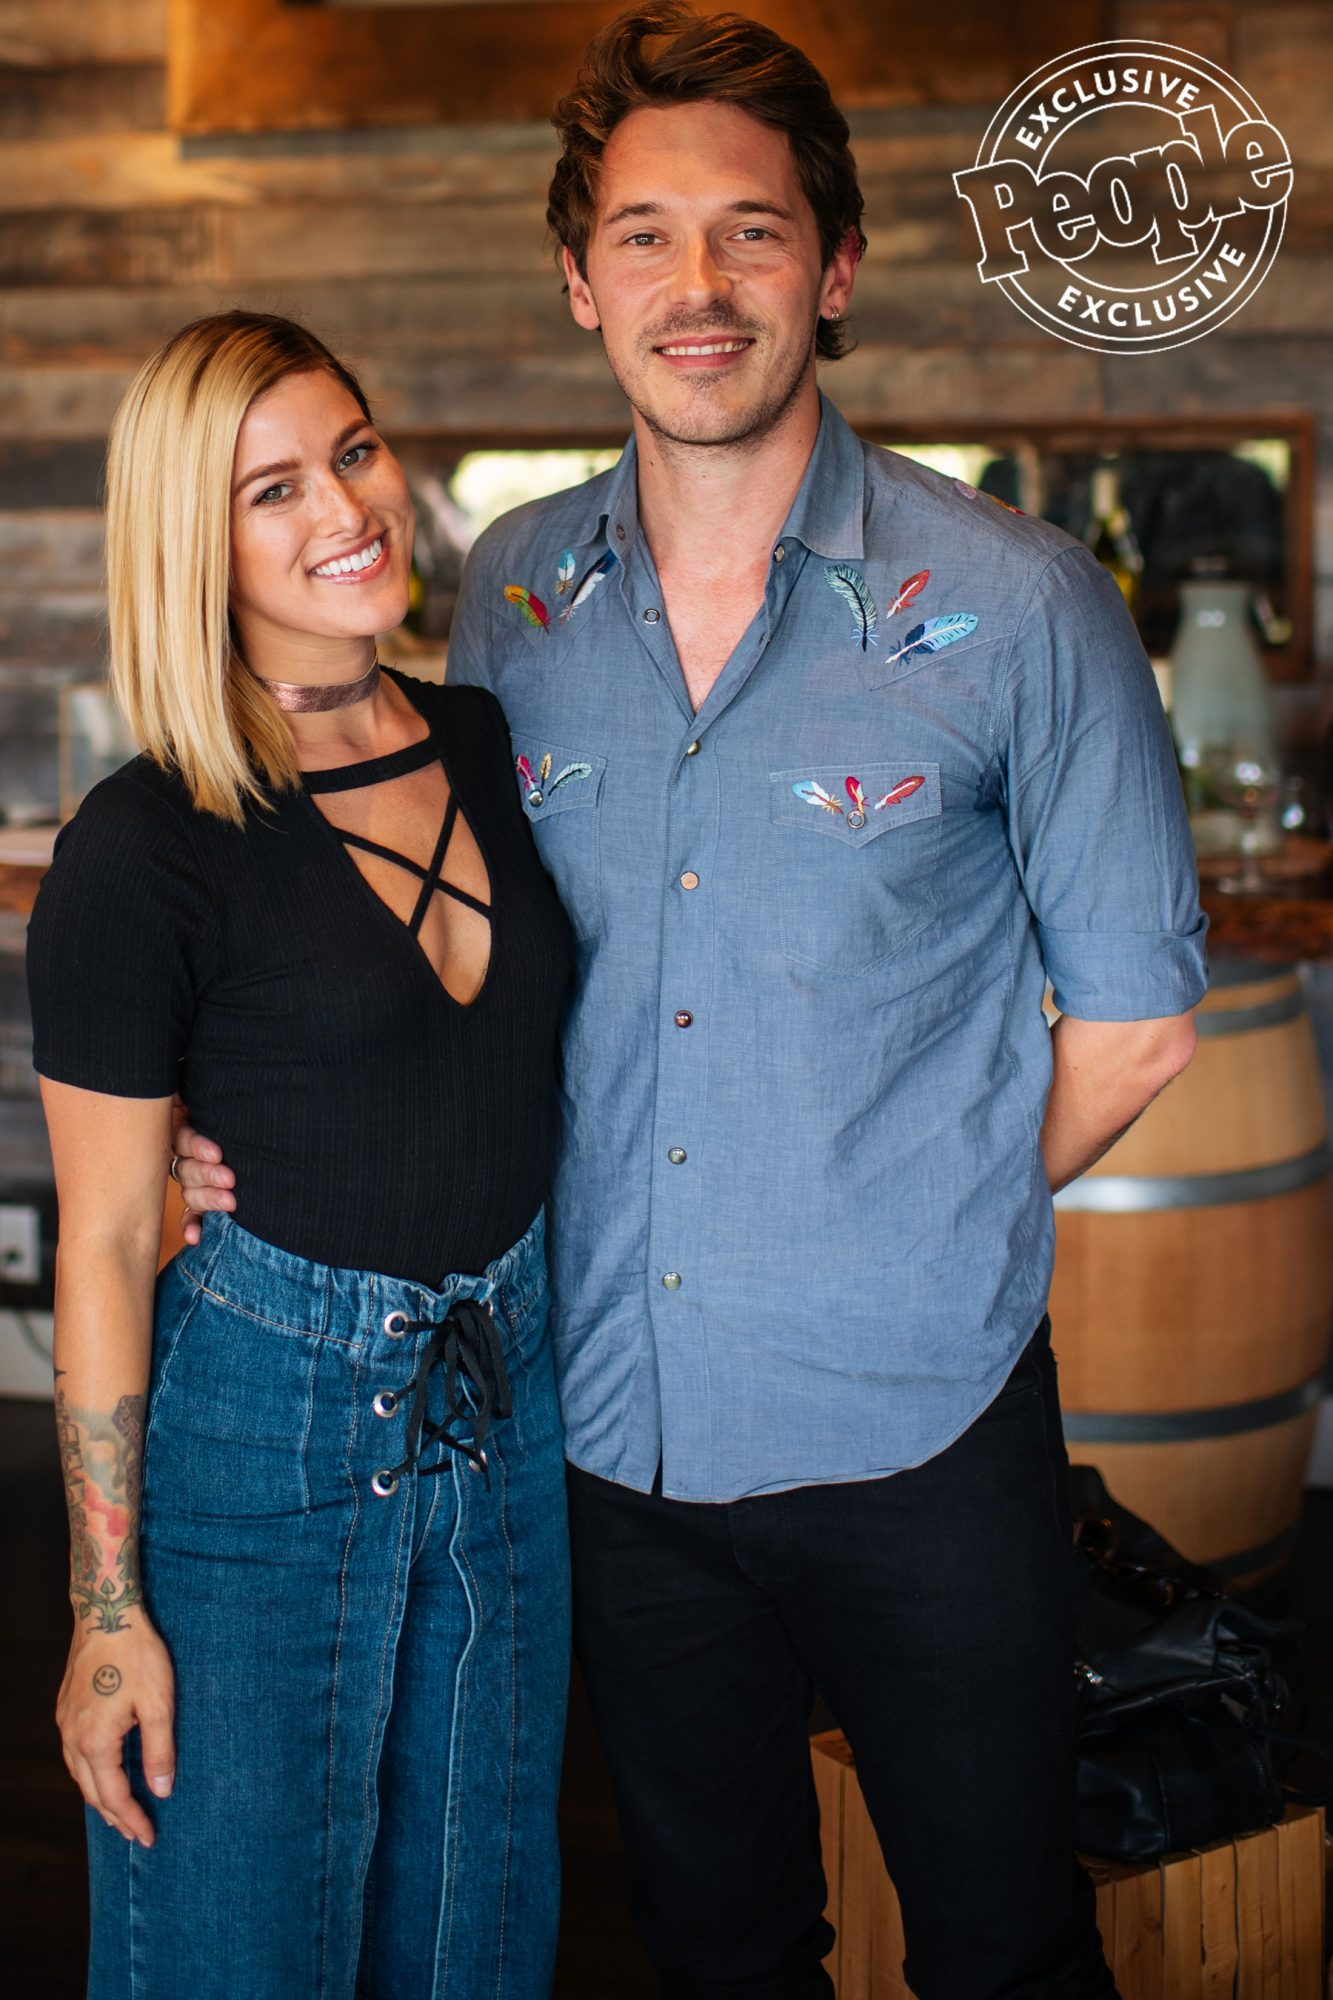 Cassadee-Pope-and-Sam-Palladino-pose-for-a-picture-at-LE-Estates-during-LITV